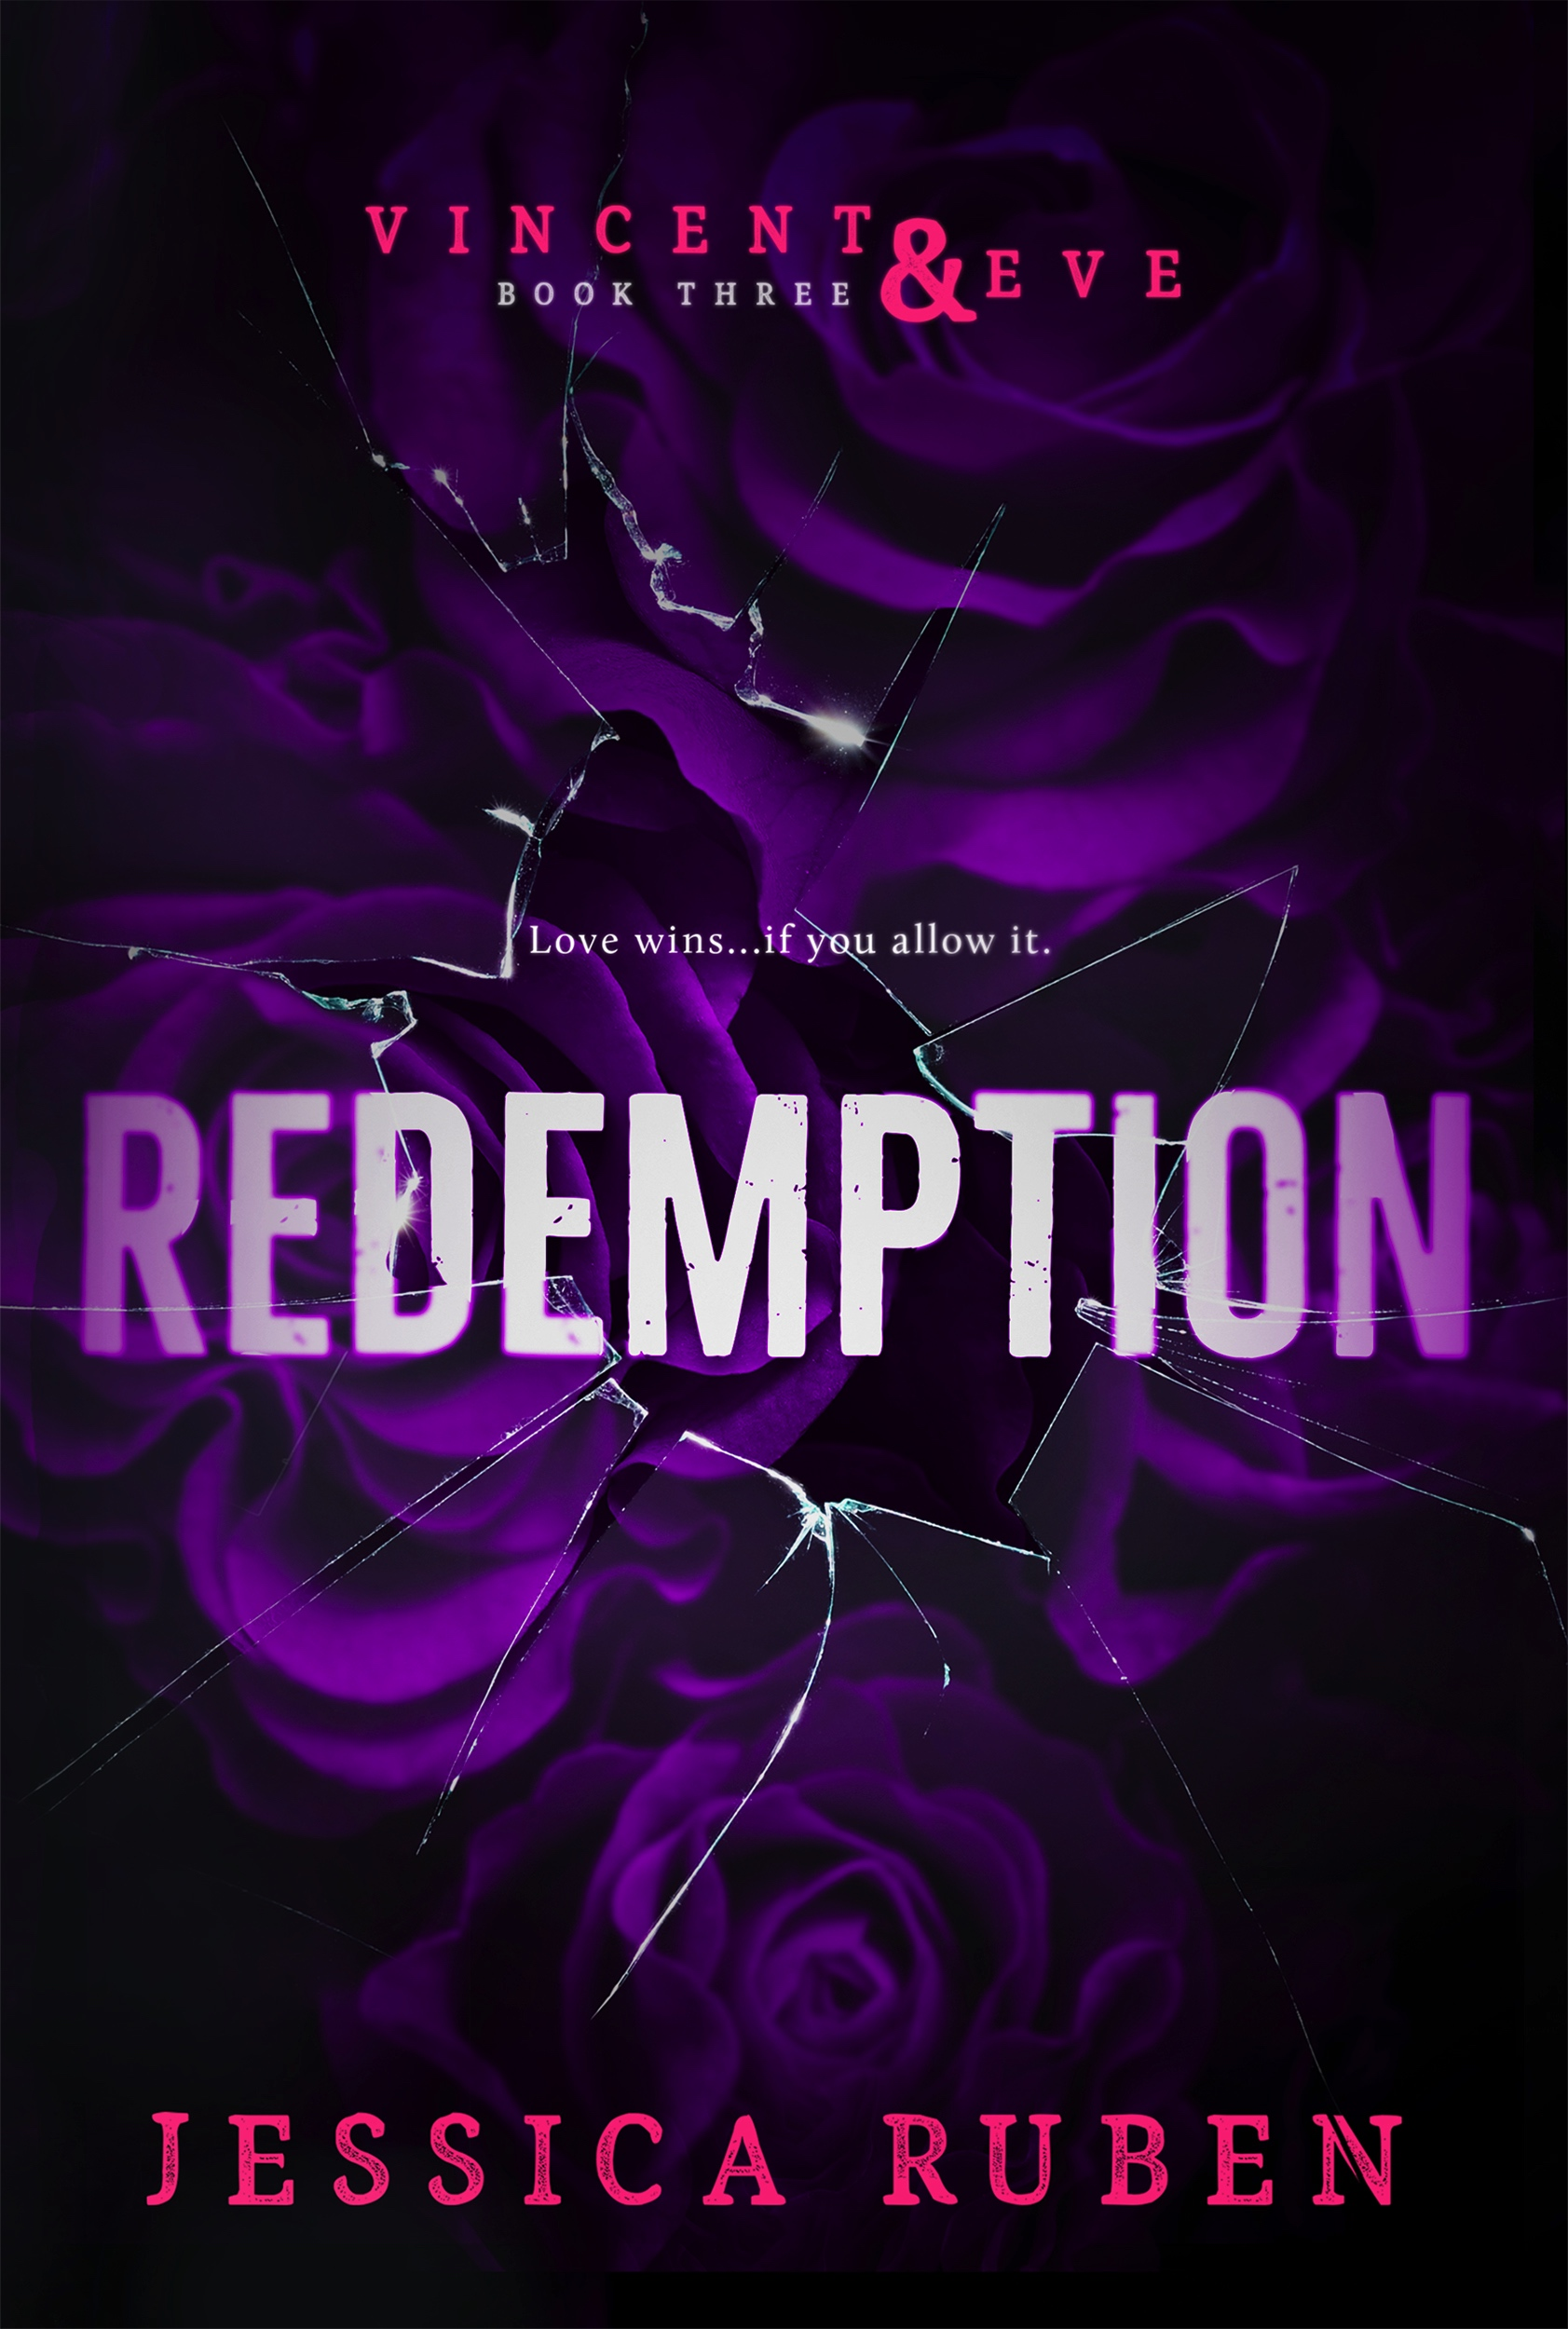 Redemption by Jessica Ruben